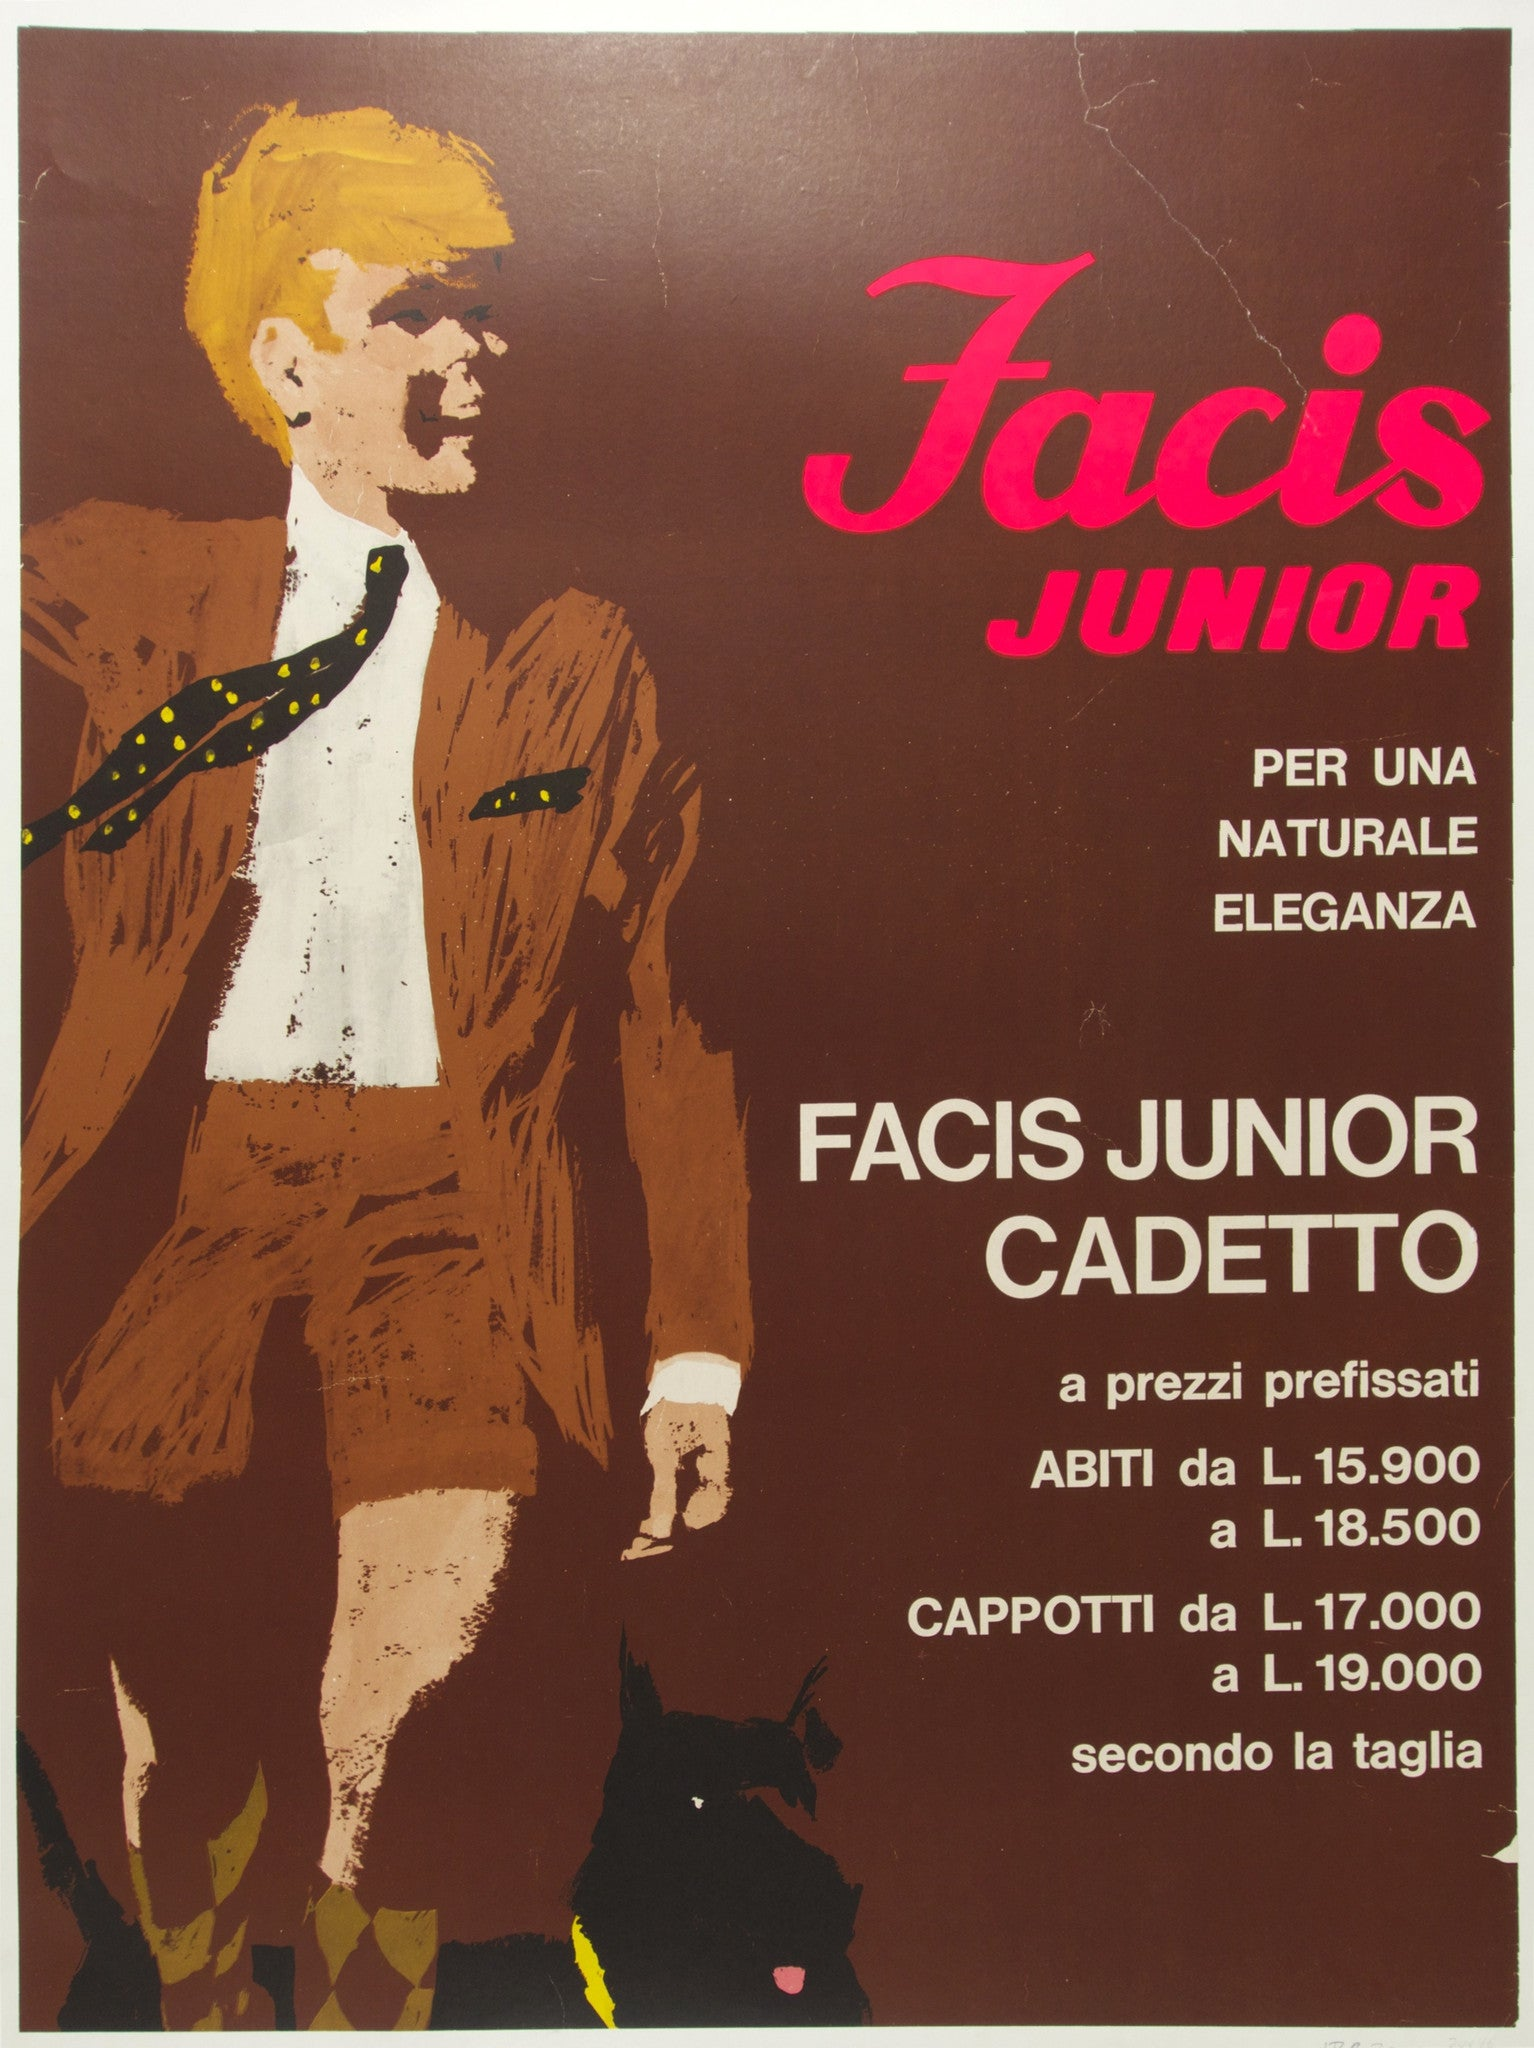 Facis Junior